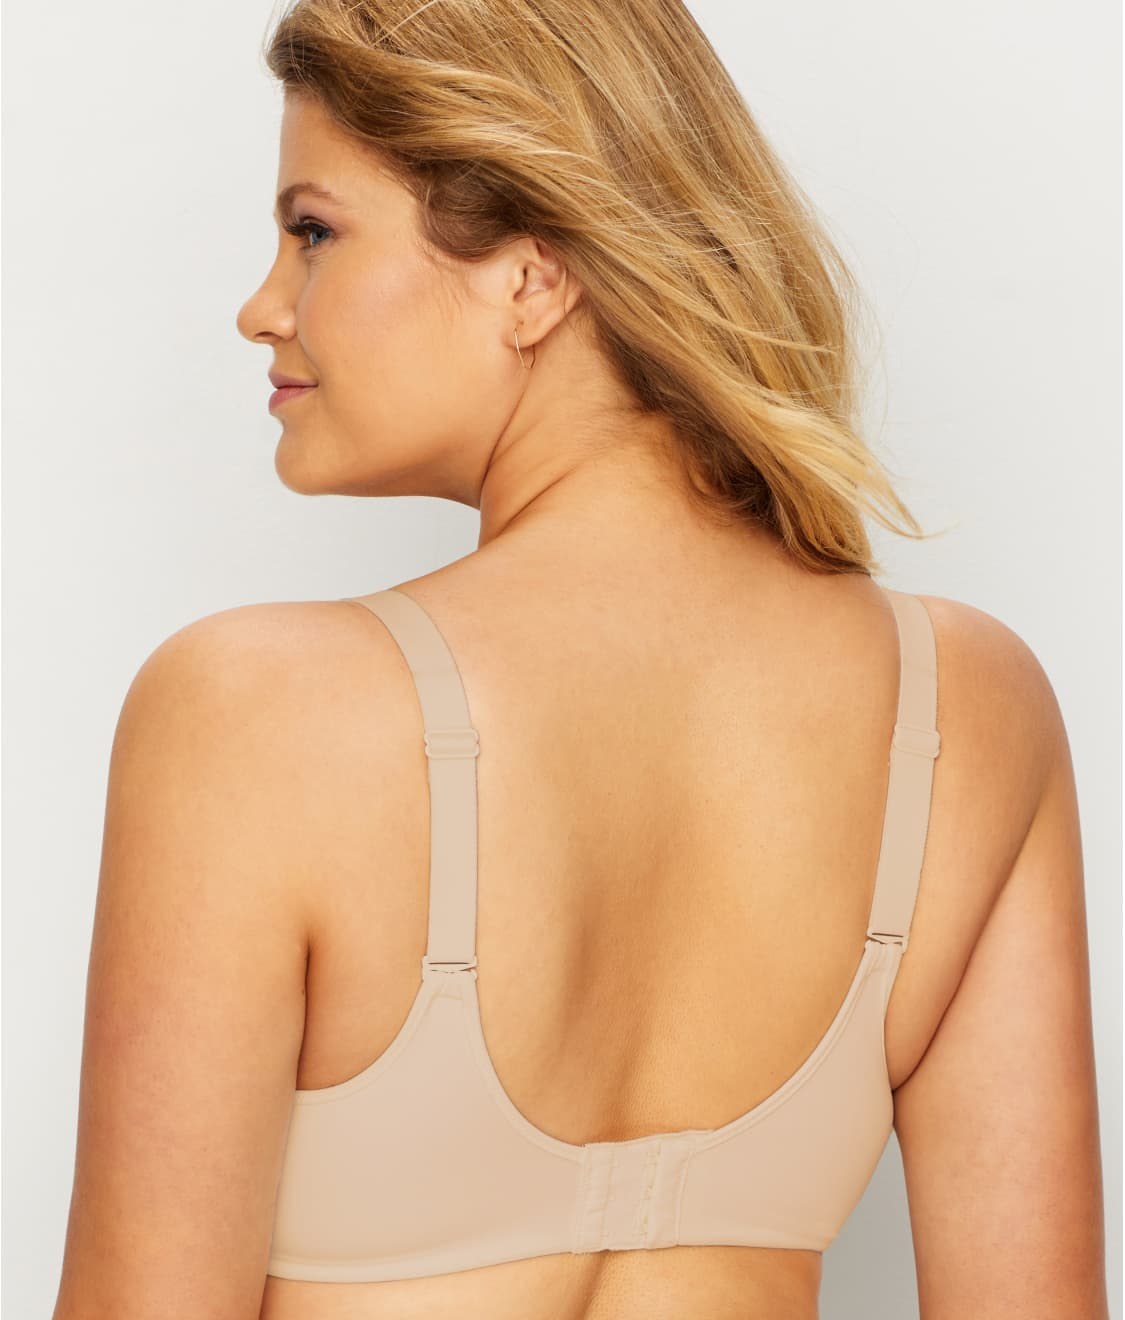 c1b83ec3fc828 See Passion For Comfort Back Smoothing Bra in Latte Lift Lace